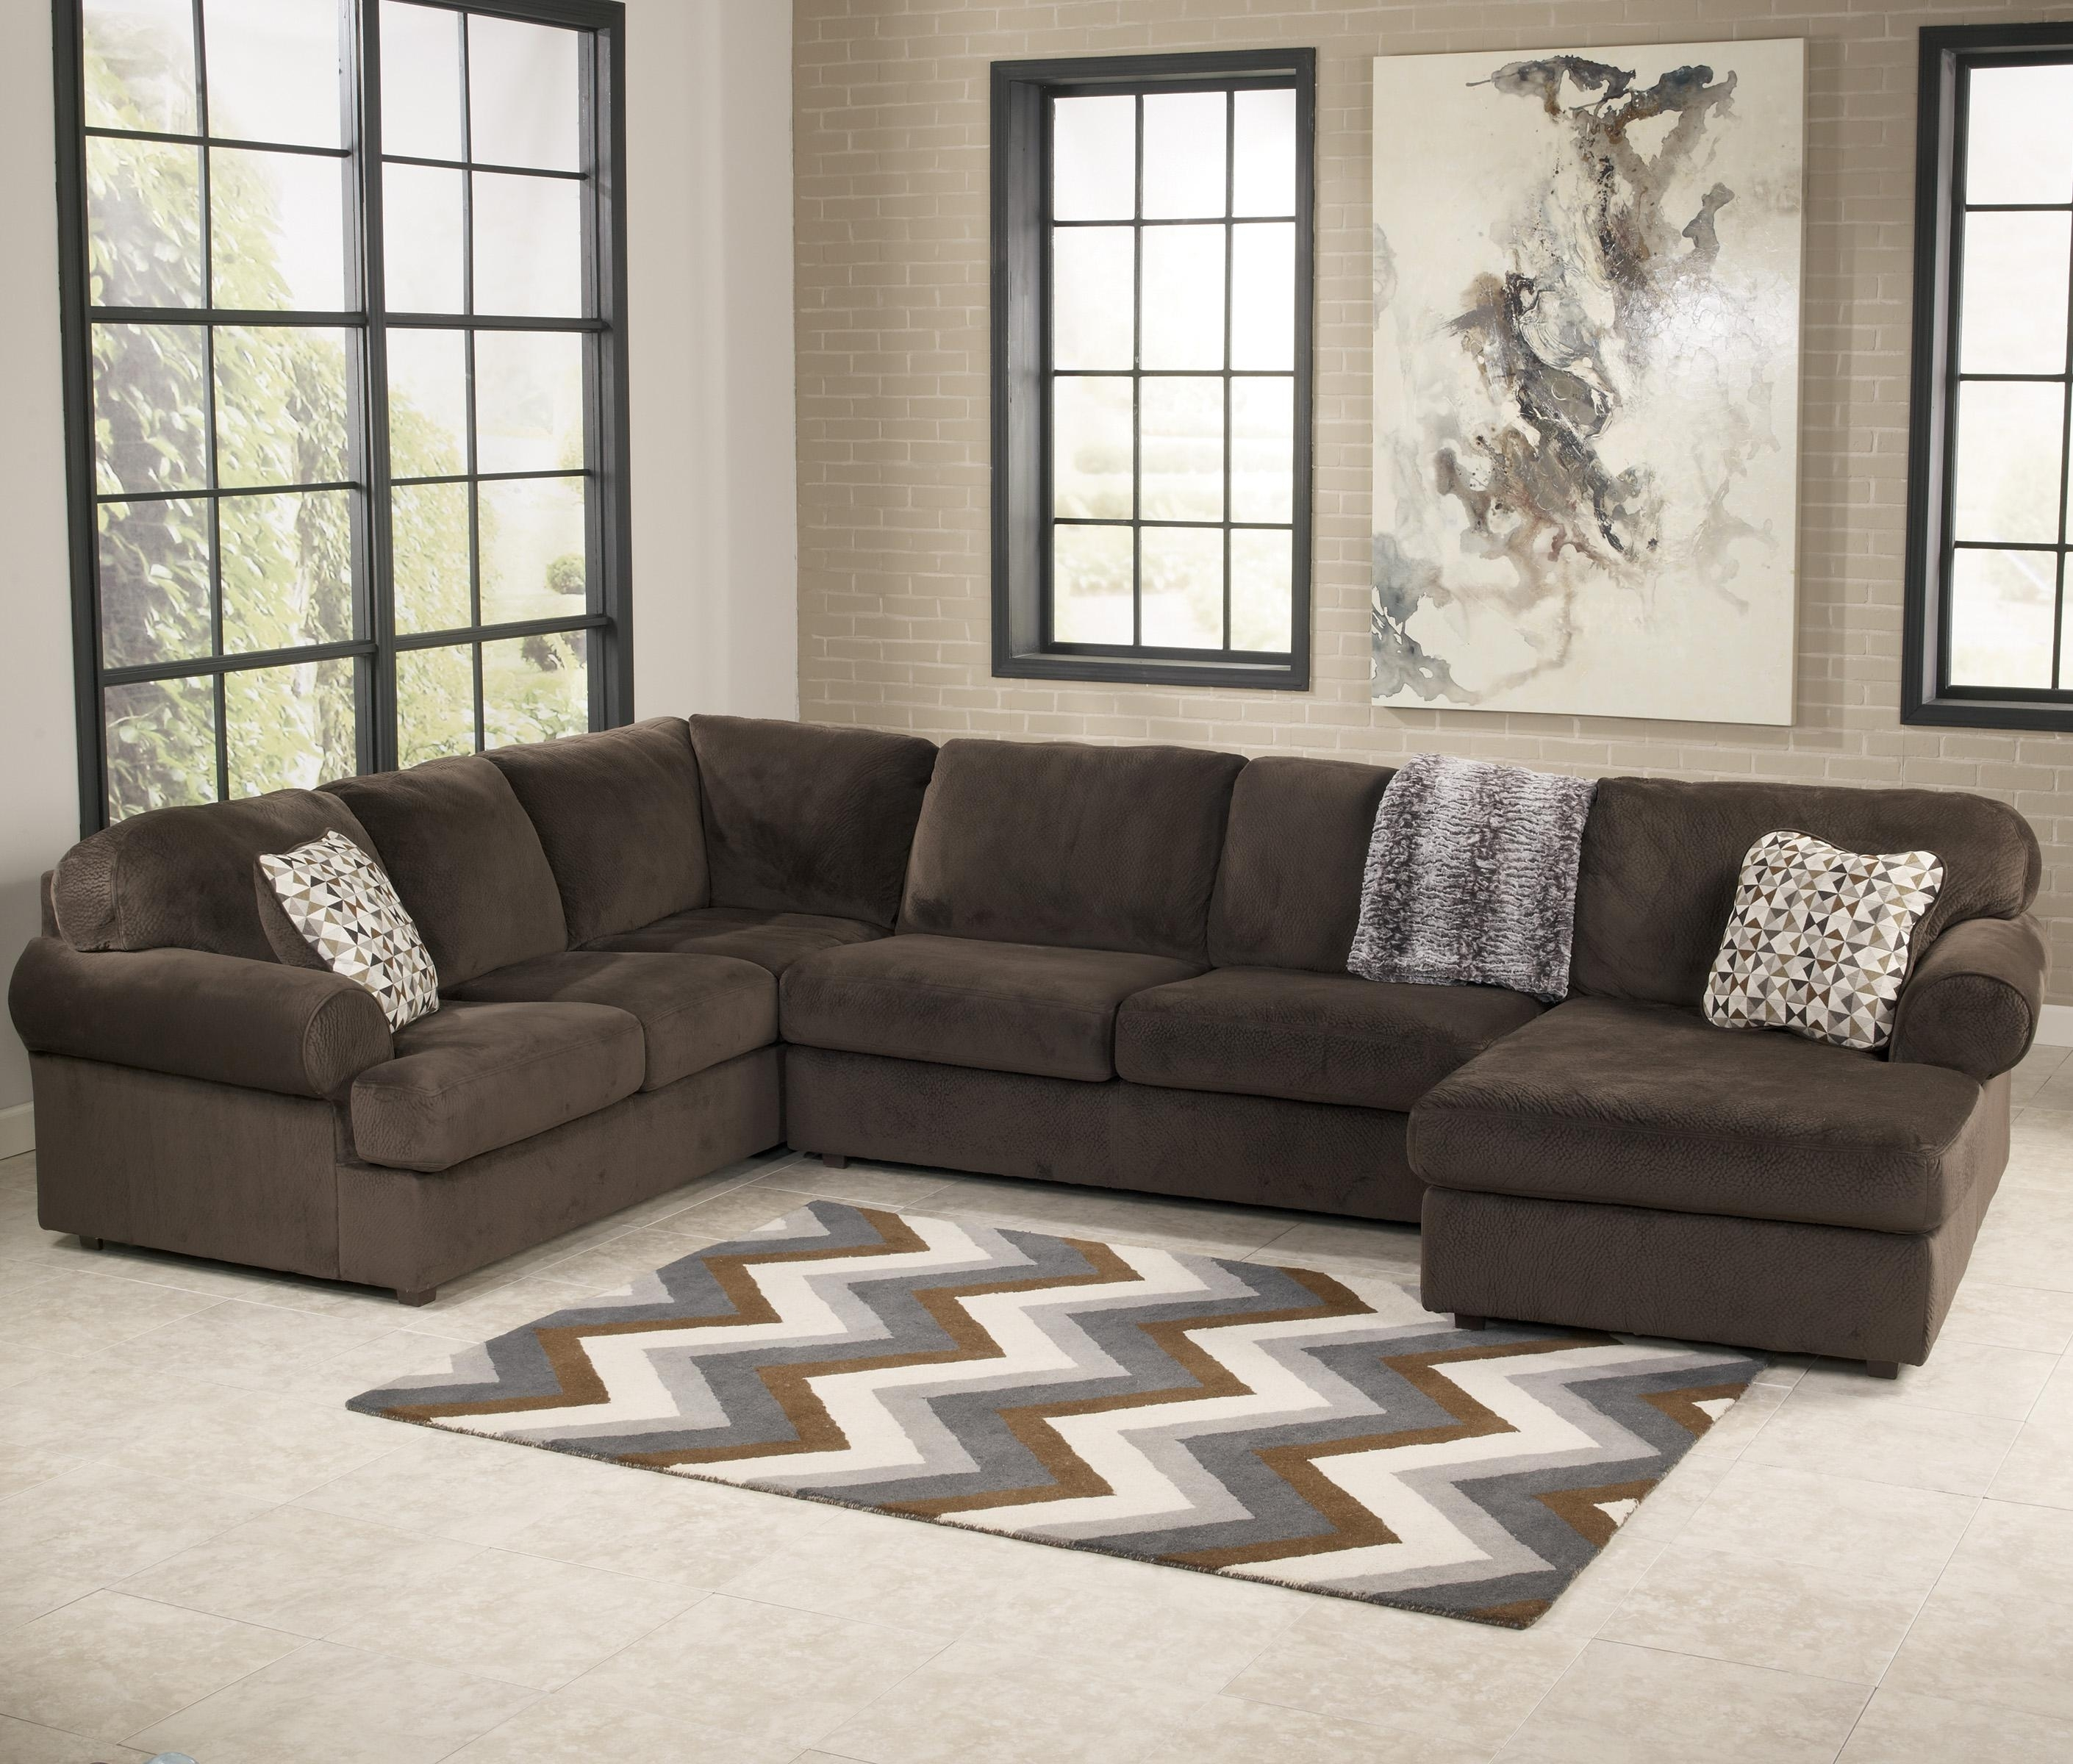 Signature Designashley Jessa Place – Chocolate Casual Sectional For Chocolate Sectional Sofas (View 6 of 10)